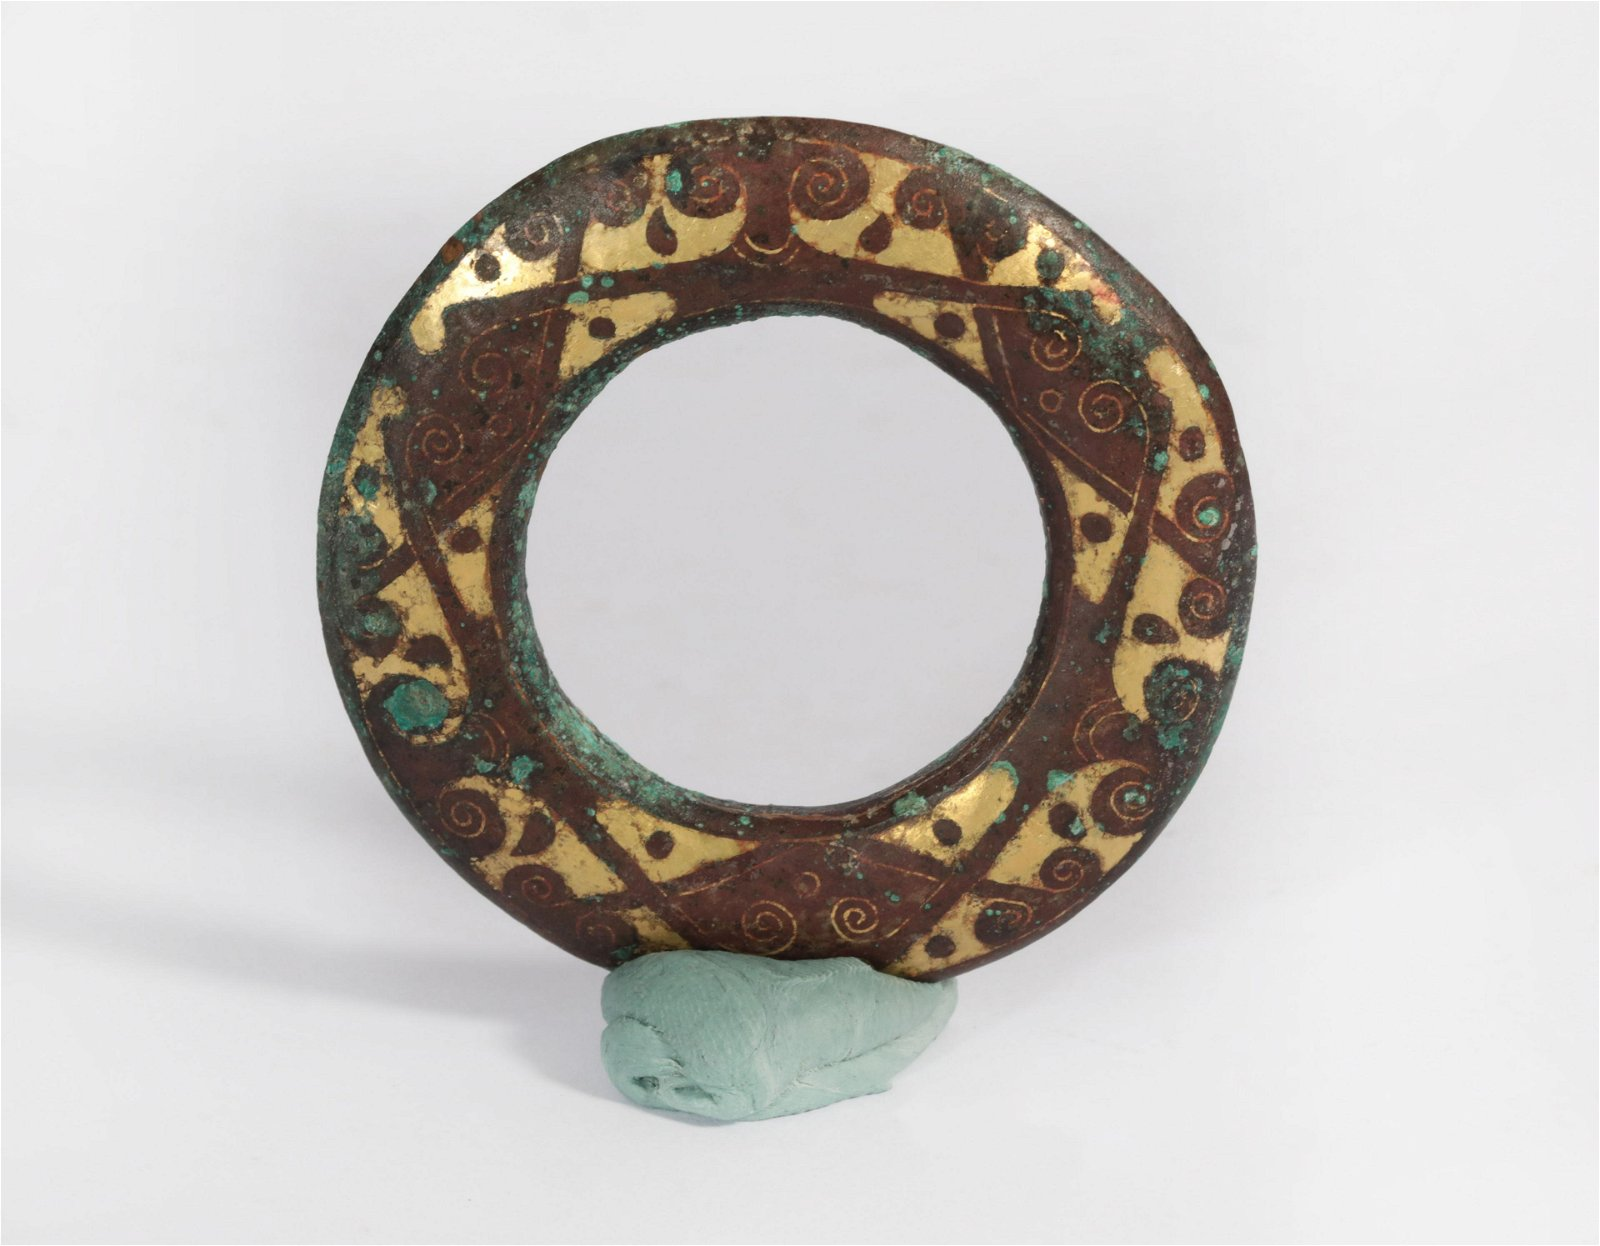 A Parcel Gilt Bronze Rings Warring States Period